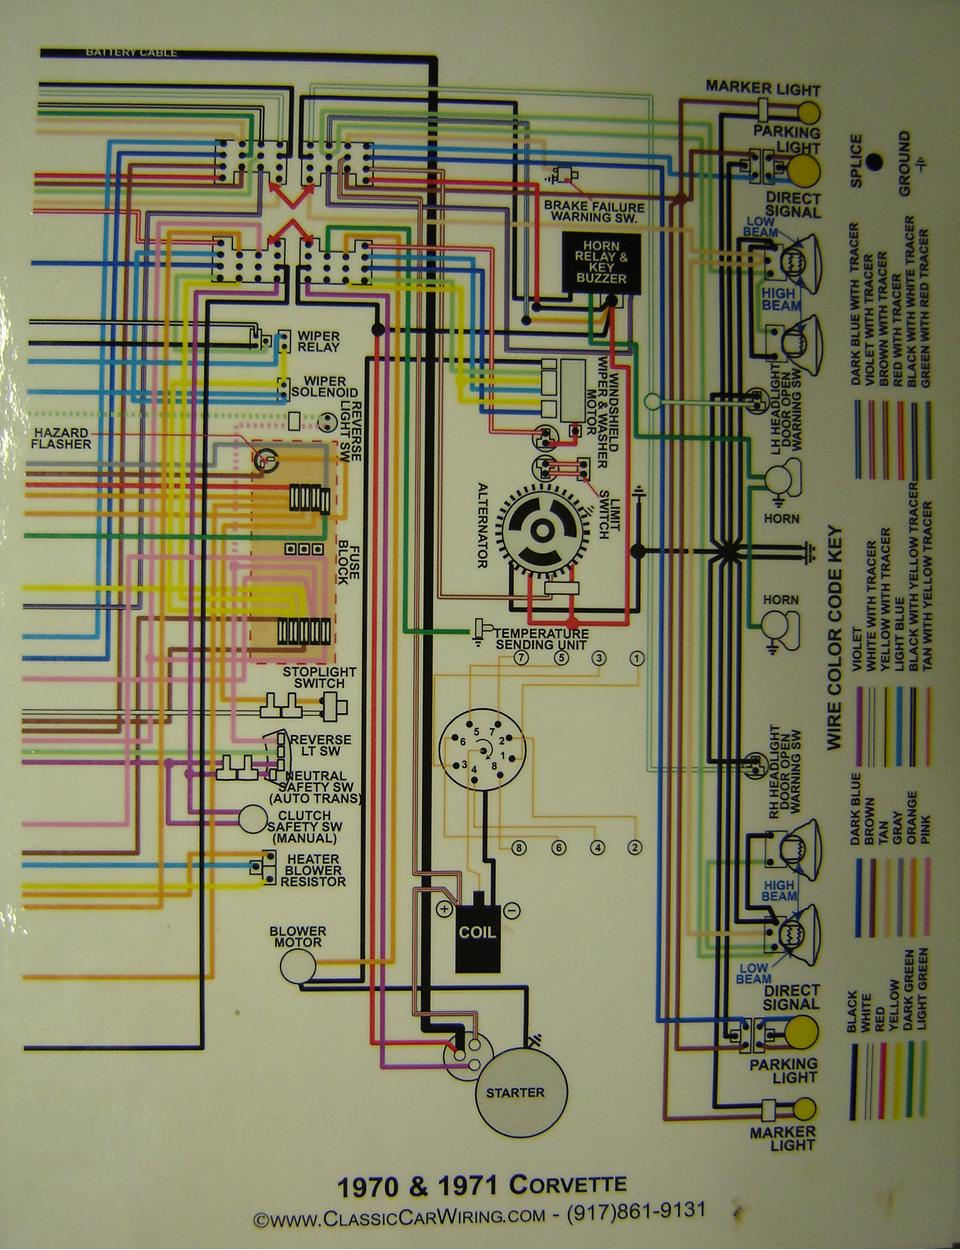 1970 71 corvette color wiring diagram B chevy diagrams color wiring diagram at webbmarketing.co